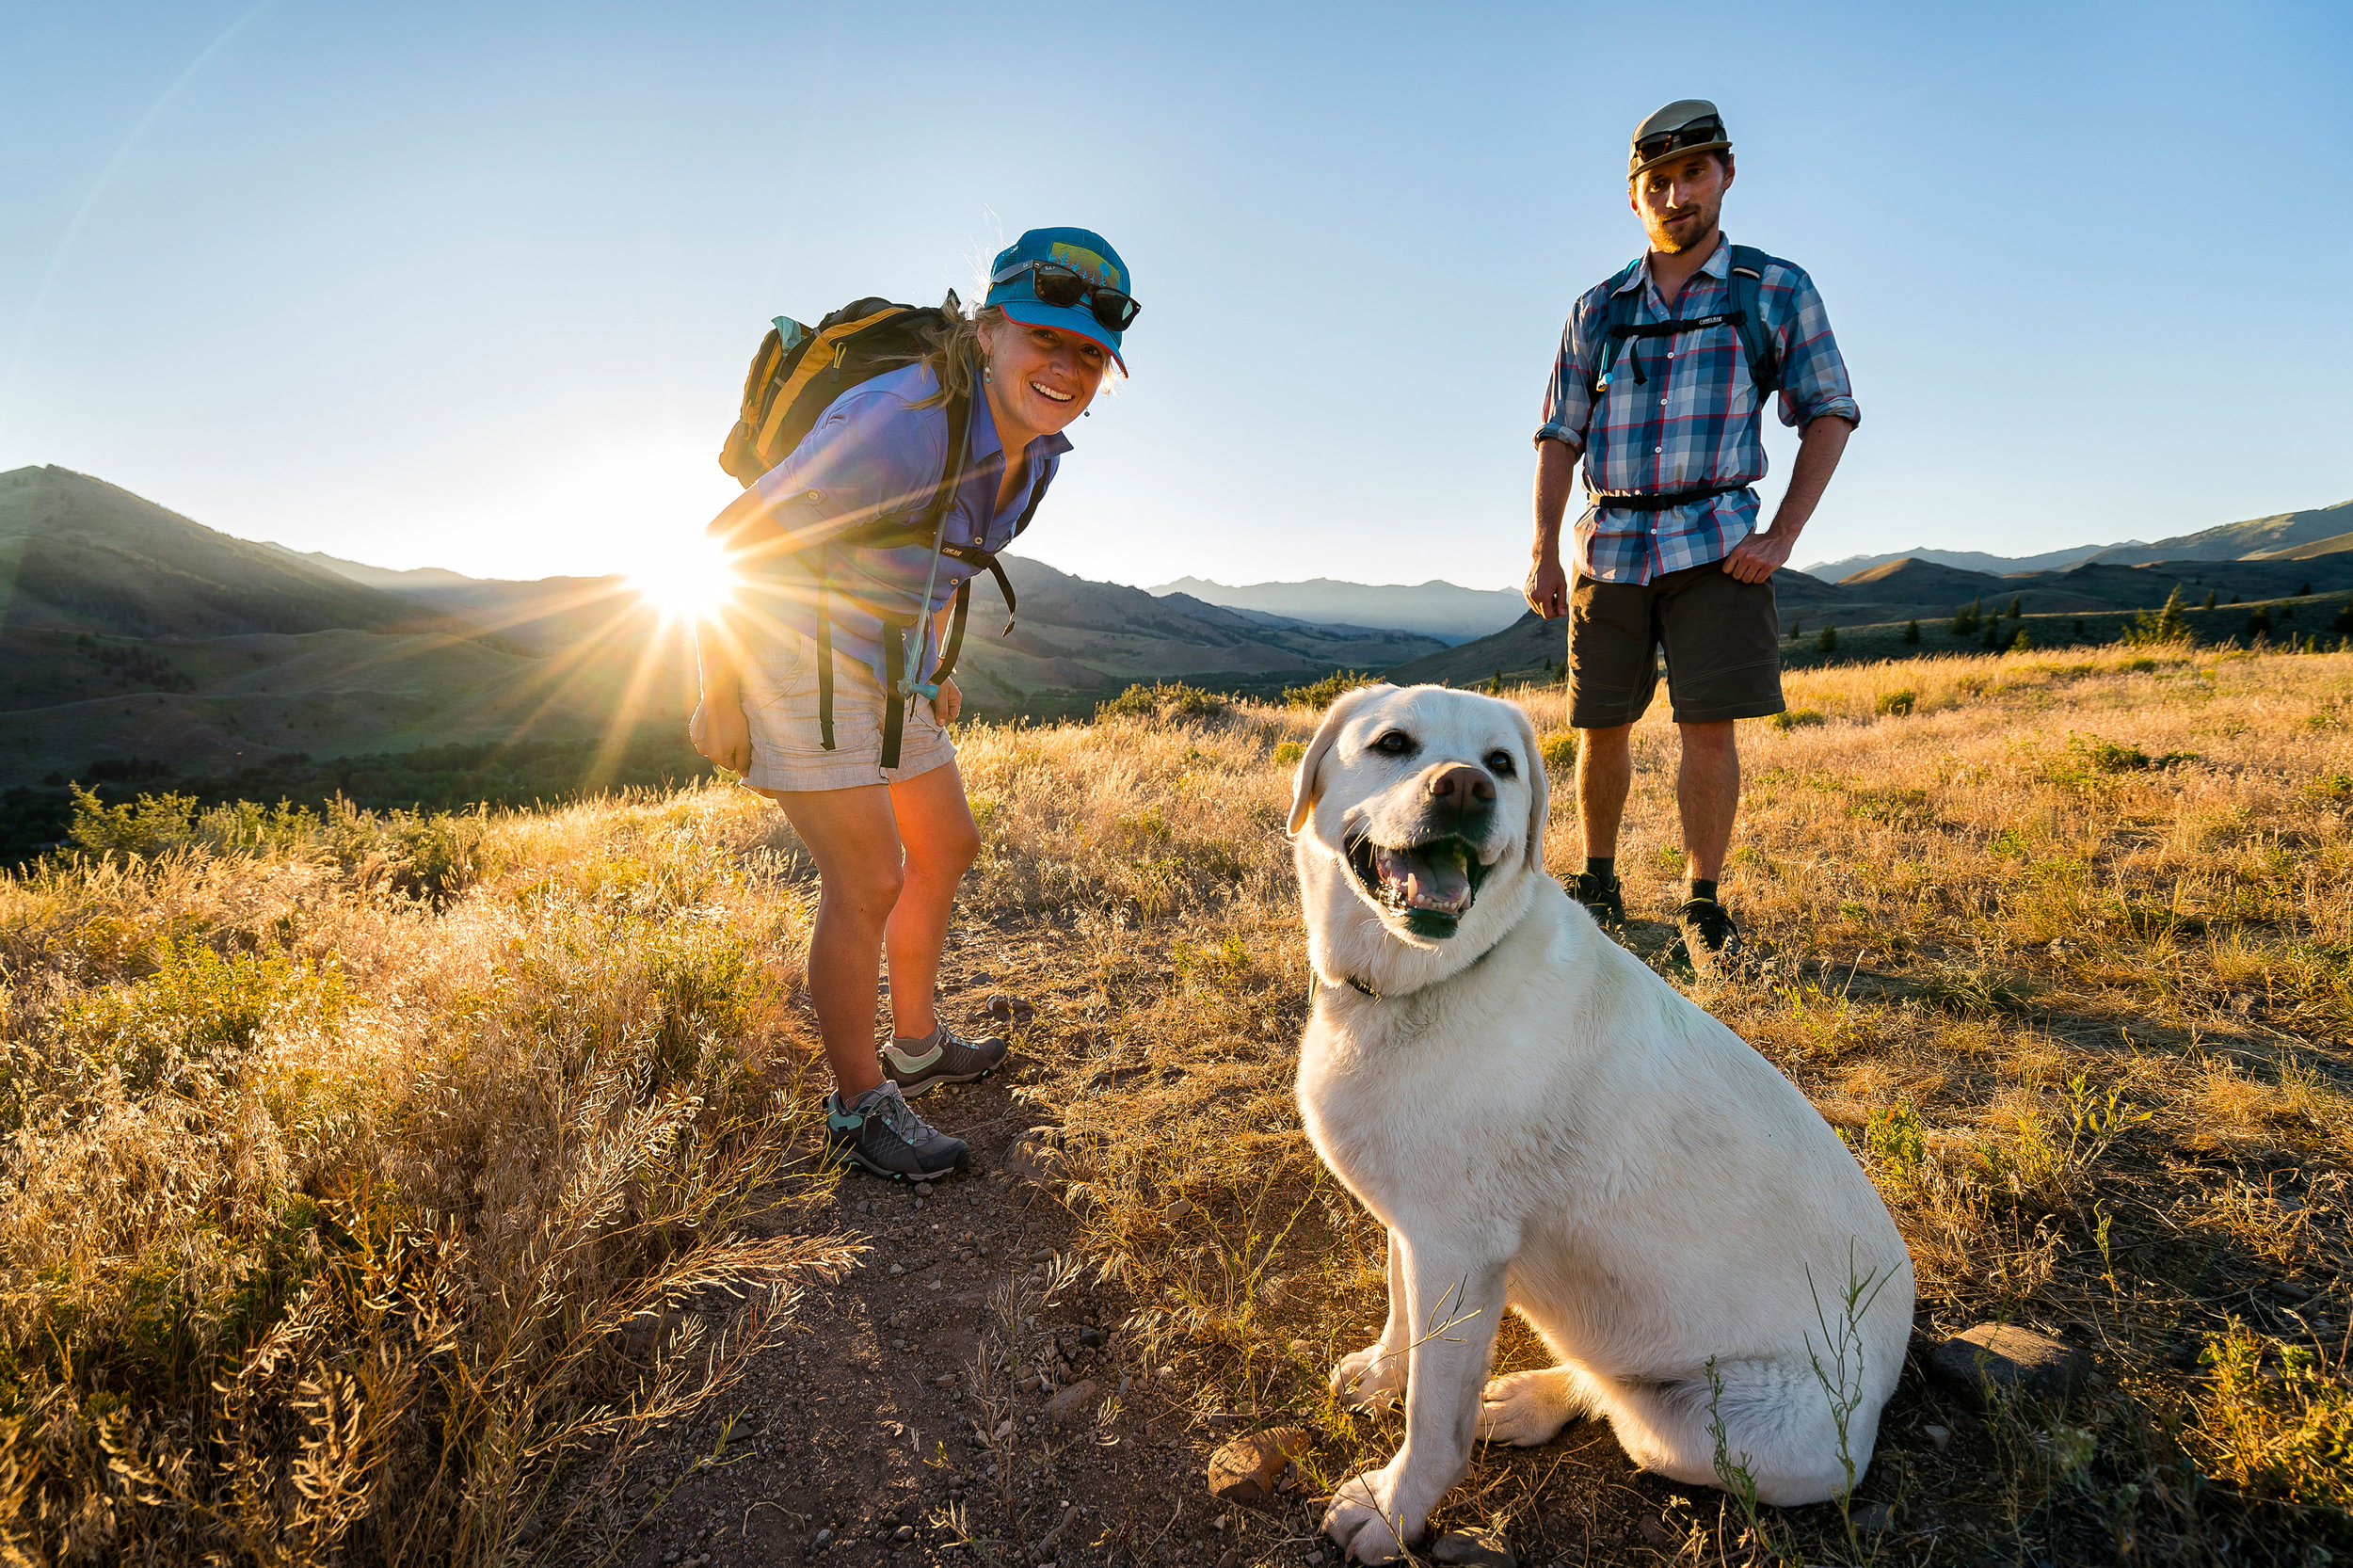 outdoor_lifestyle_Idaho_Ketchum_hiking_Stephen_matera_7-19-18_a9_DSC2648.jpg